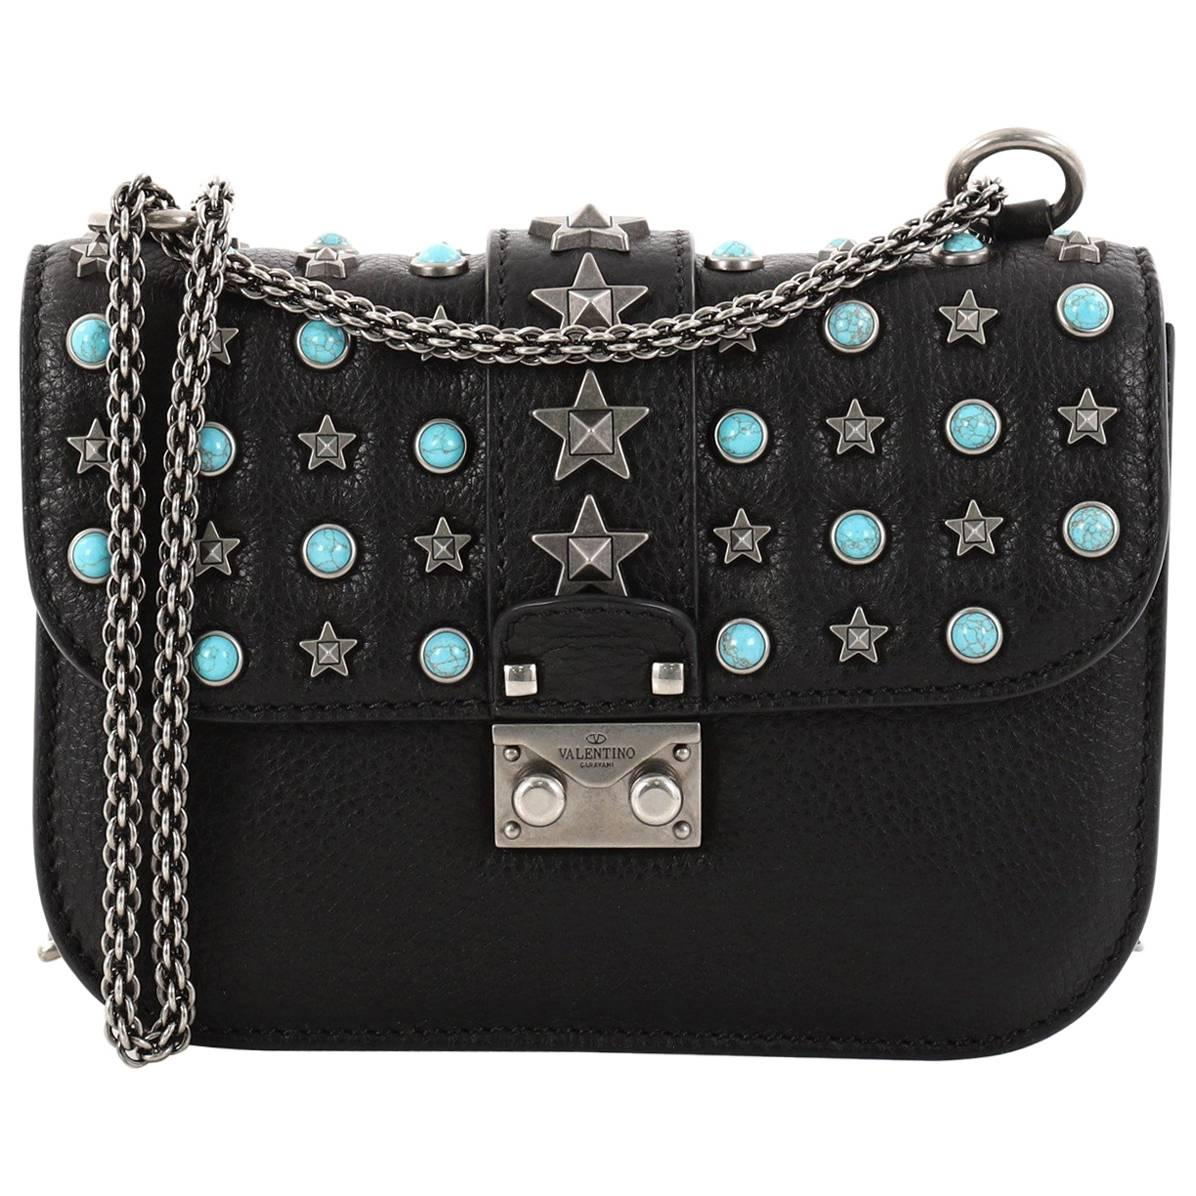 Valentino Star Studded Glam Lock Shoulder Bag Leather With Cabochons Smal wjG7u1YiX